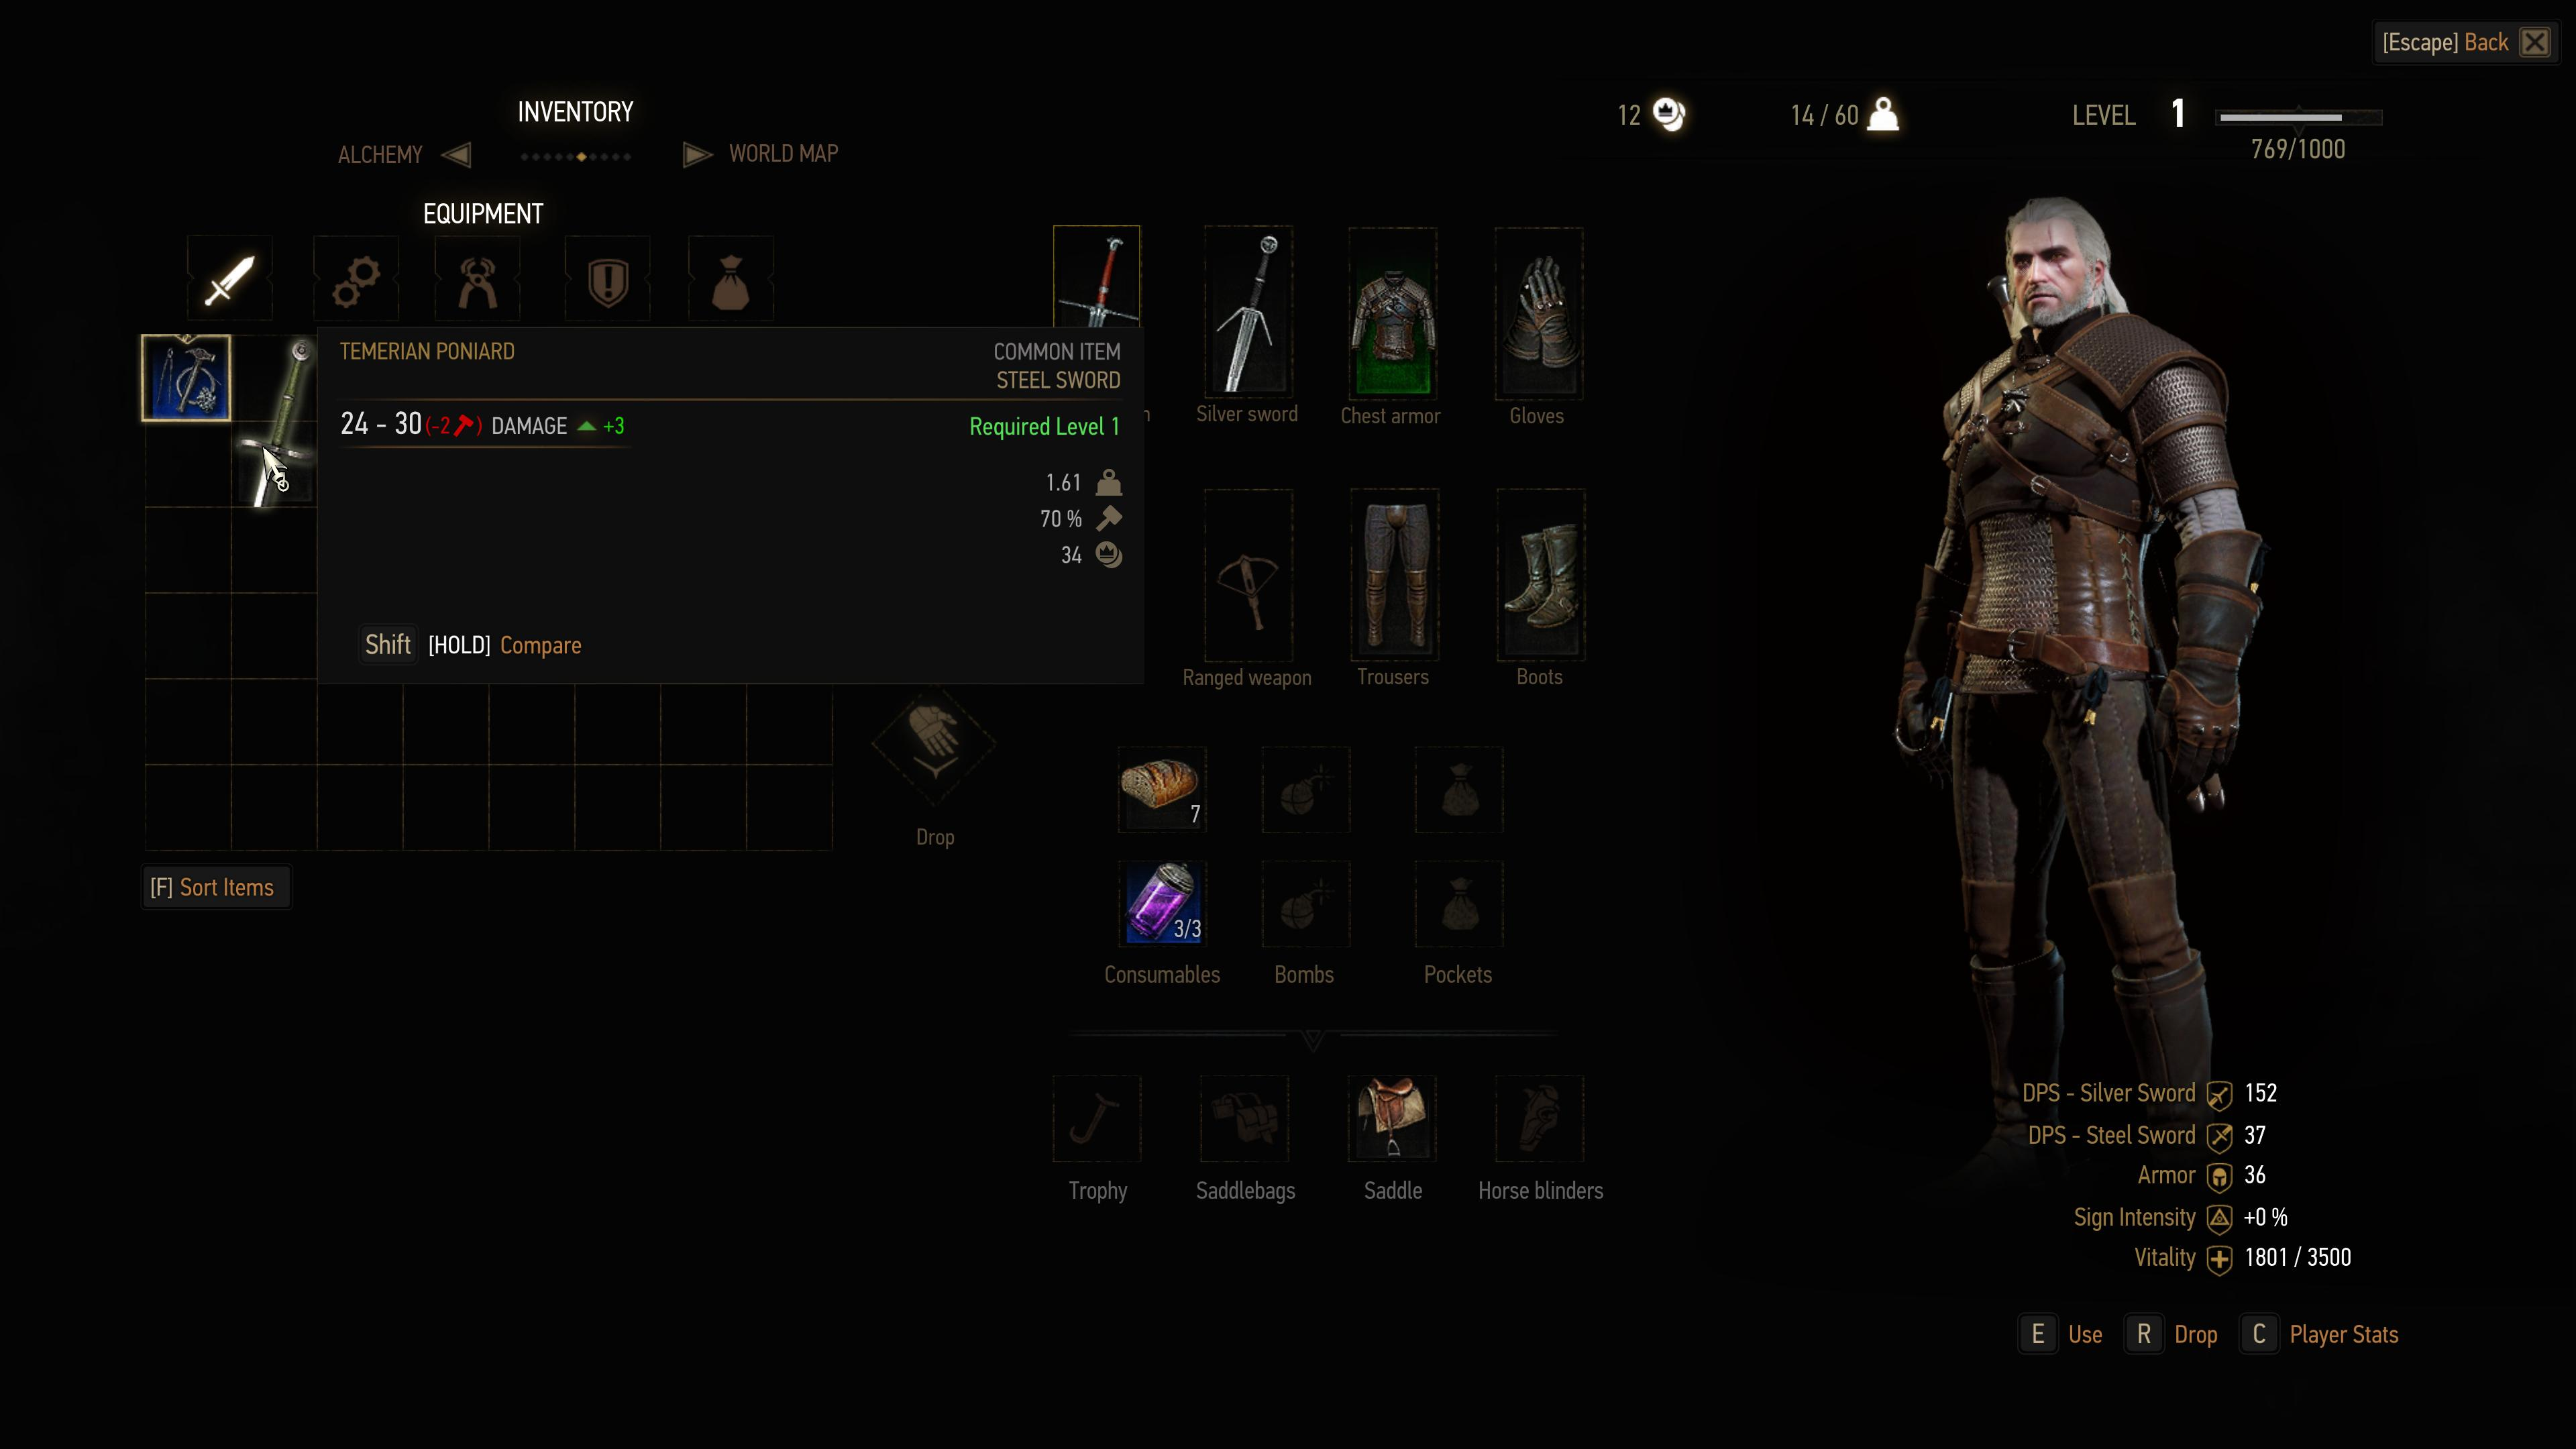 The Witcher 3 inventory